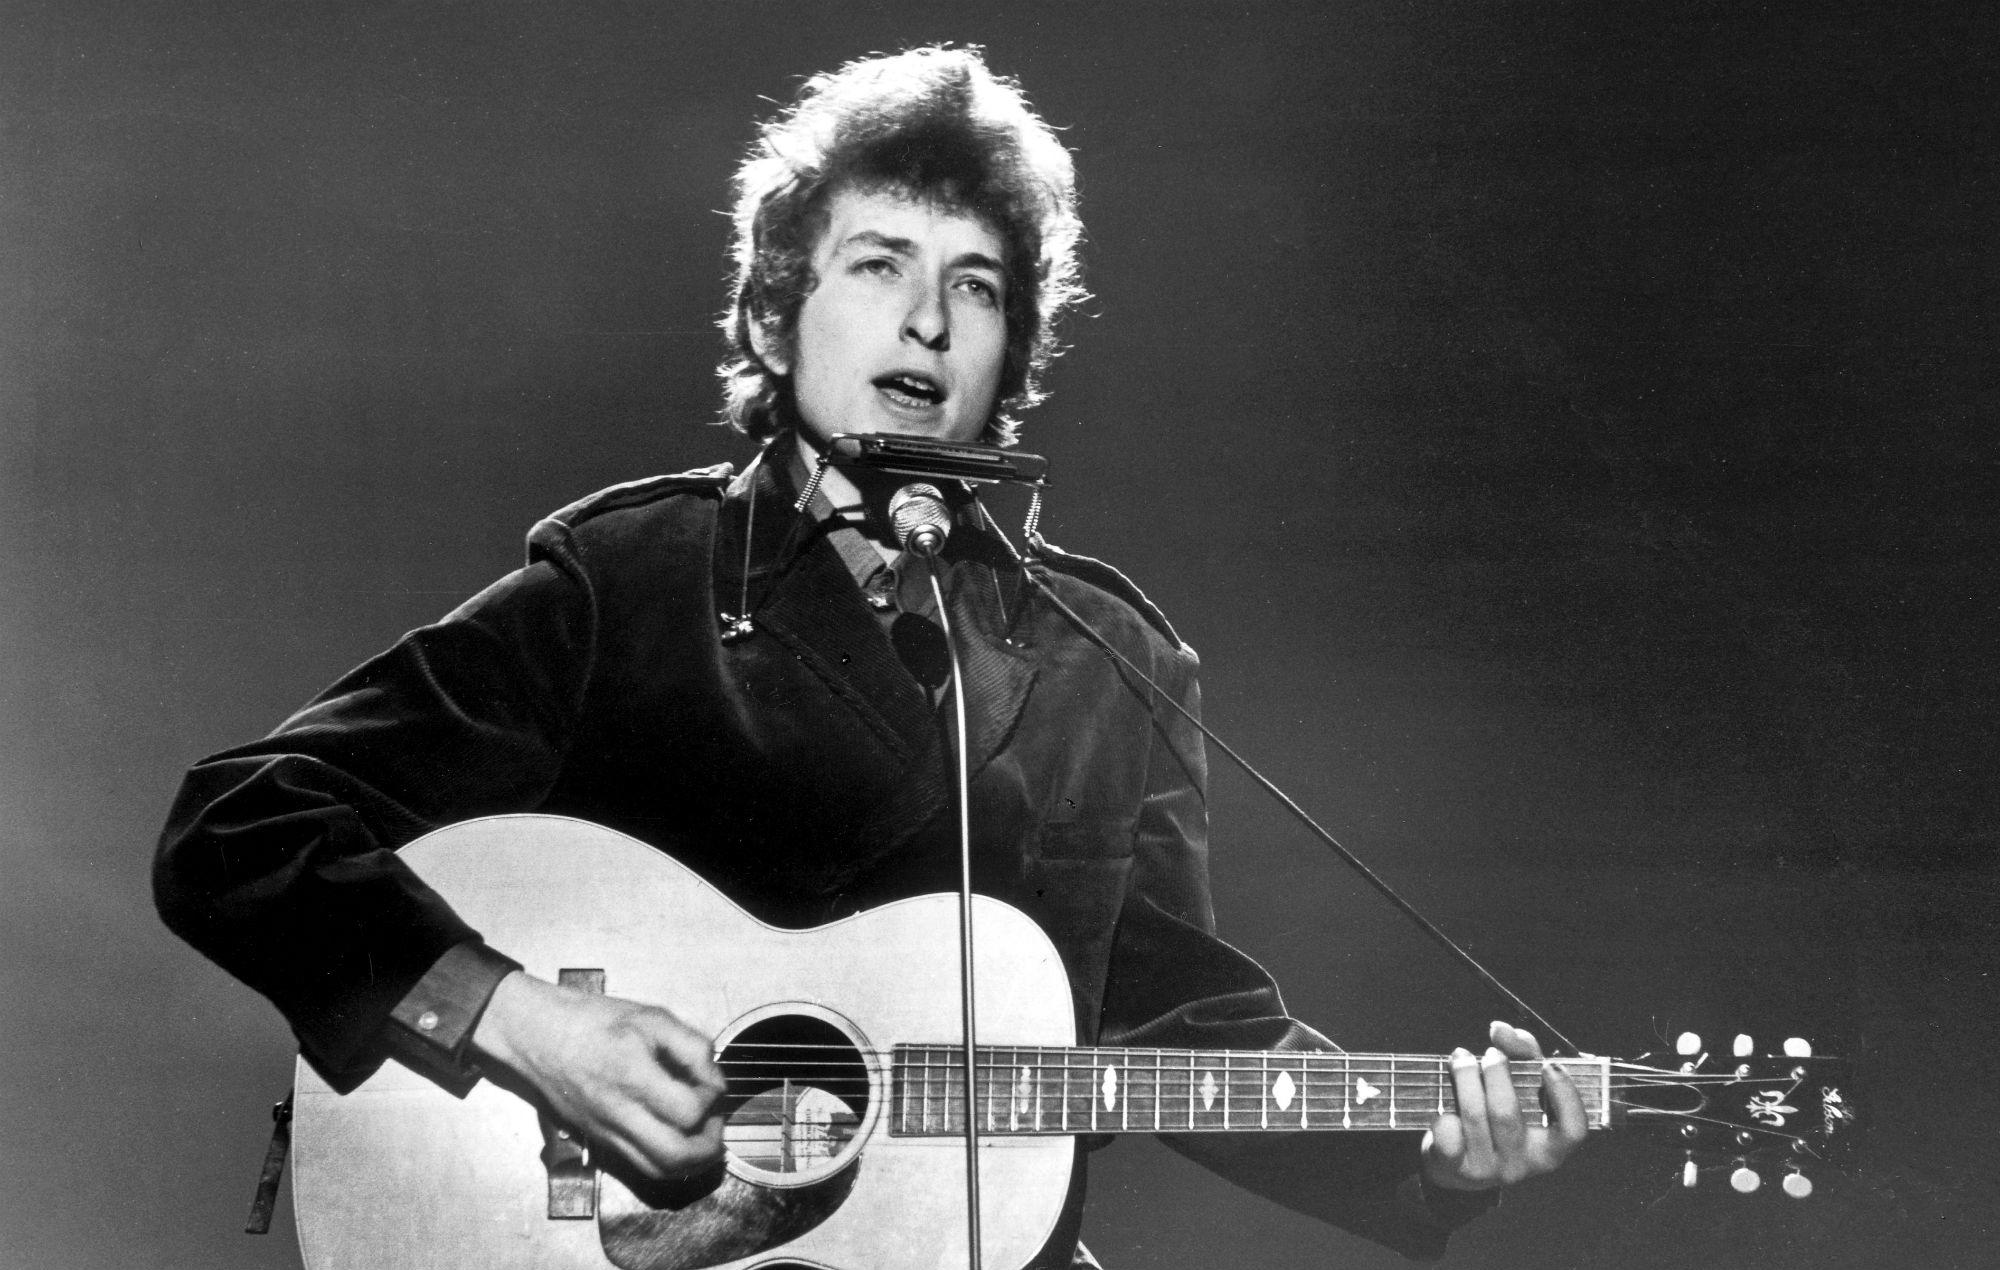 Martin Scorsese is directing a new Bob Dylan 'Rolling Thunder Revue' tour documentary https://t.co/Hwod2y0eaf https://t.co/MAKuNQ828D